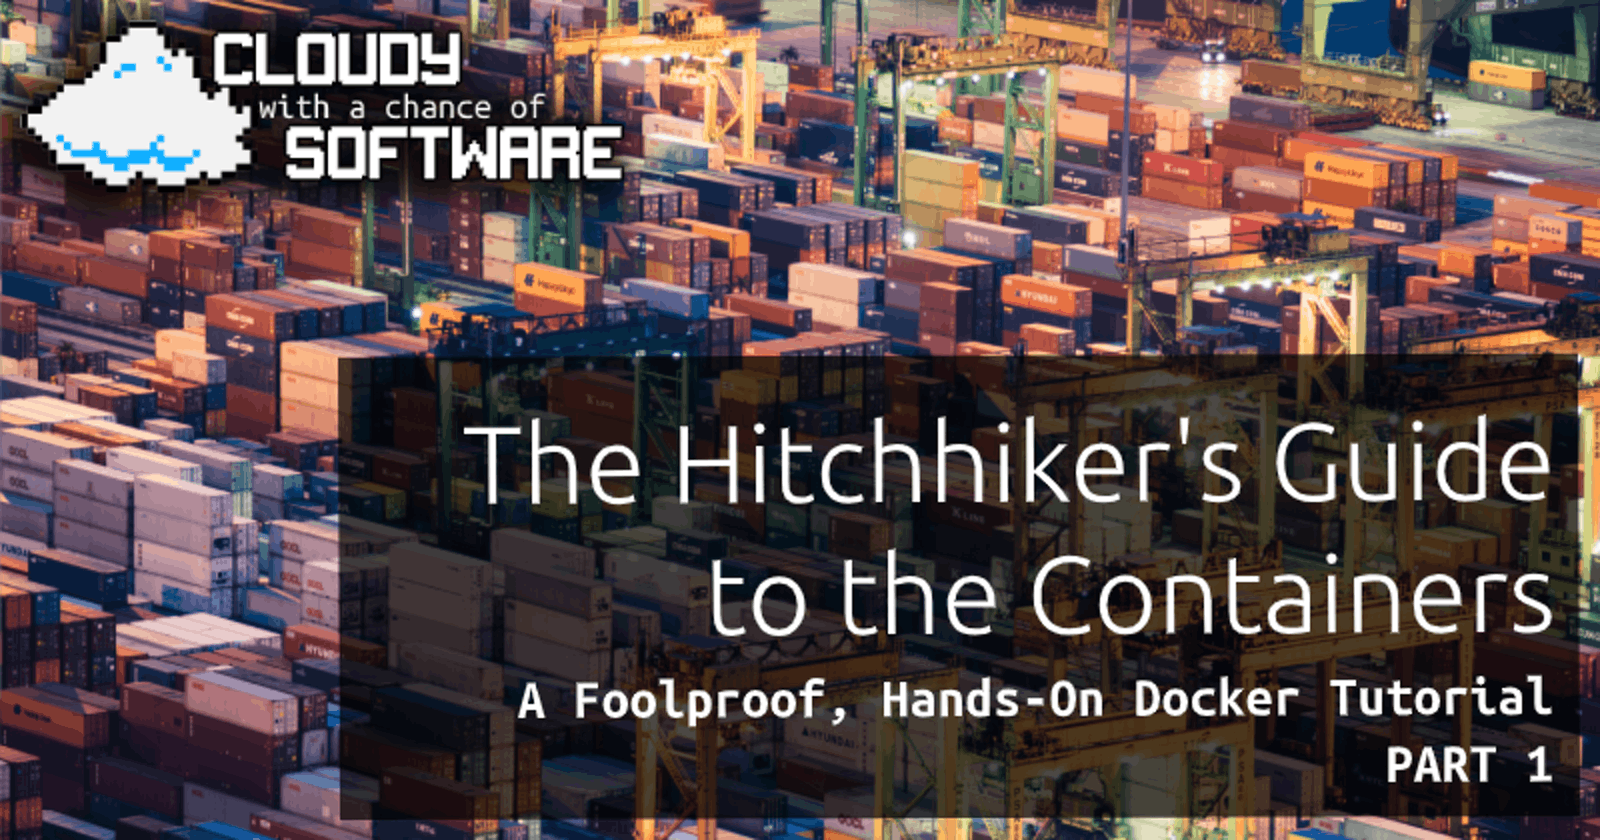 The Hitchhiker's Guide to the Containers: A Foolproof, Hands-on Docker Tutorial (Part 1)